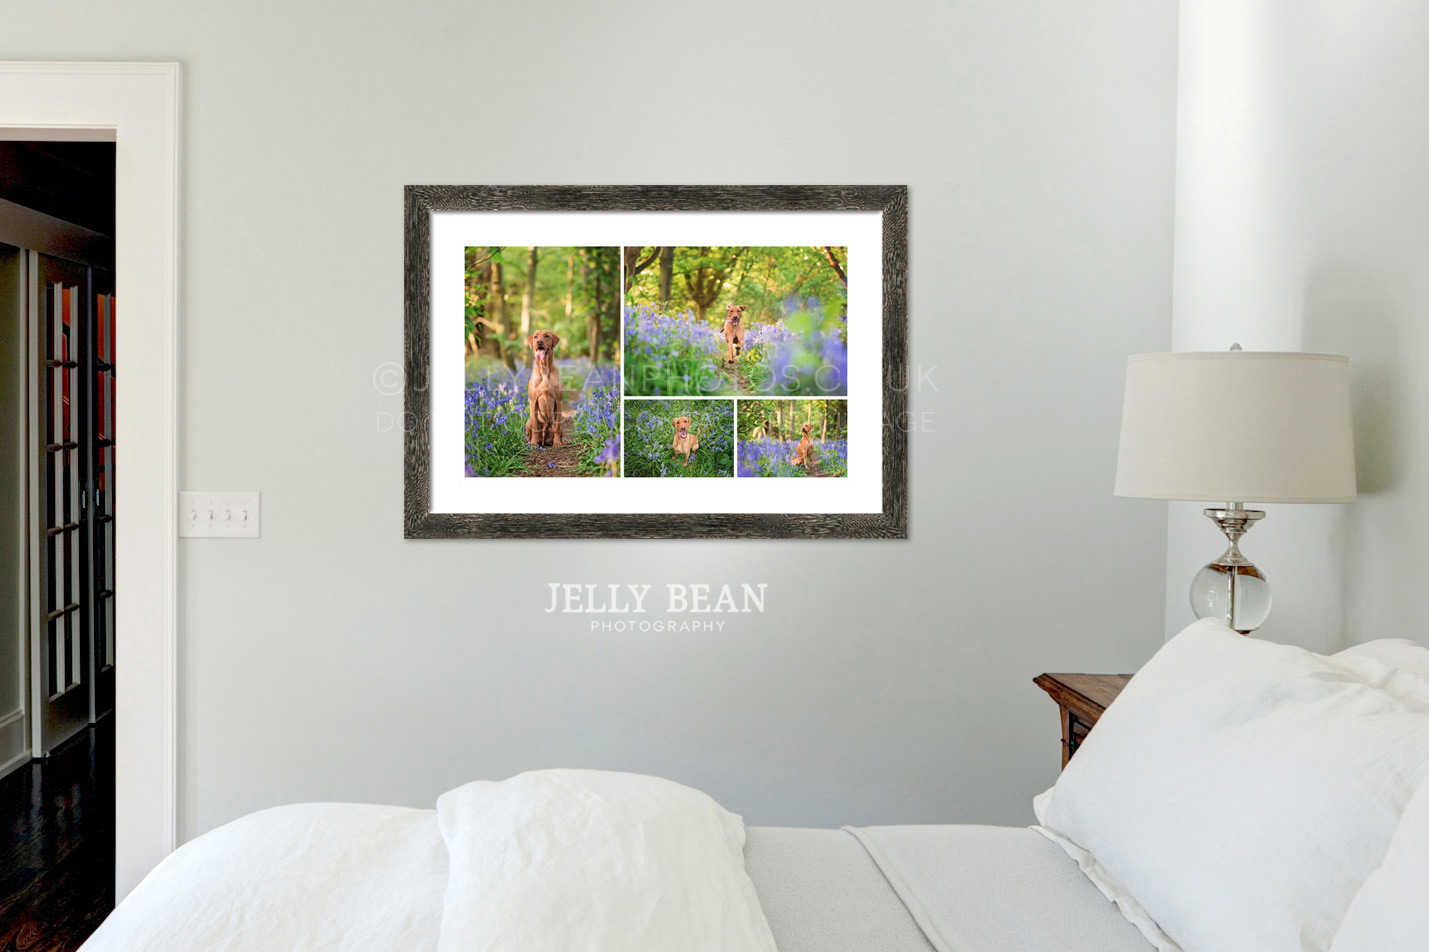 Framed photographs on bedroom wall